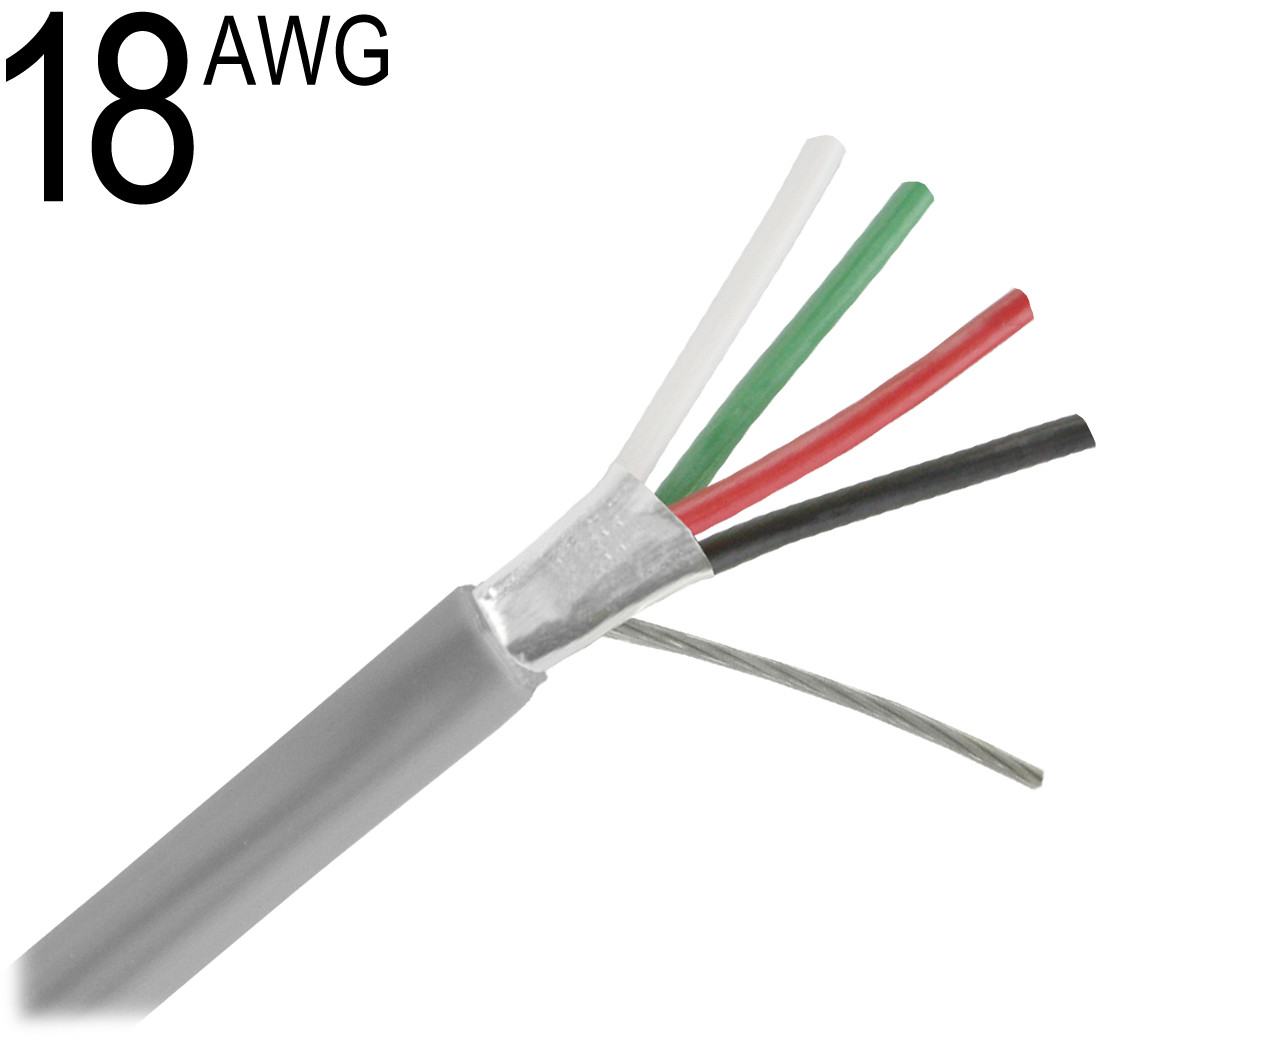 what does awg stand for